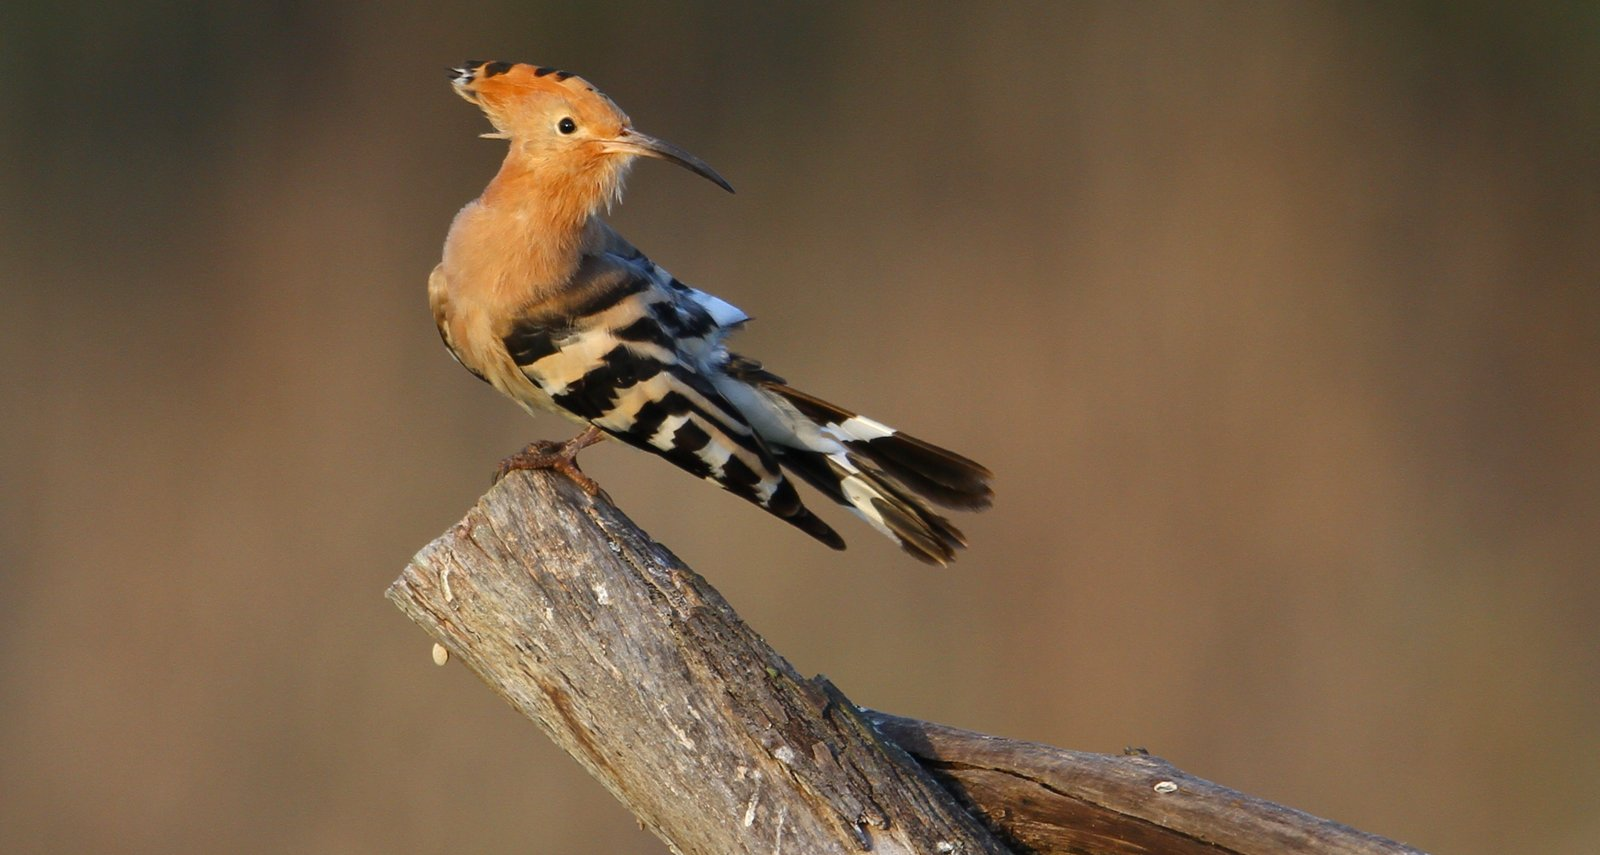 Hoopoe perched on a branch